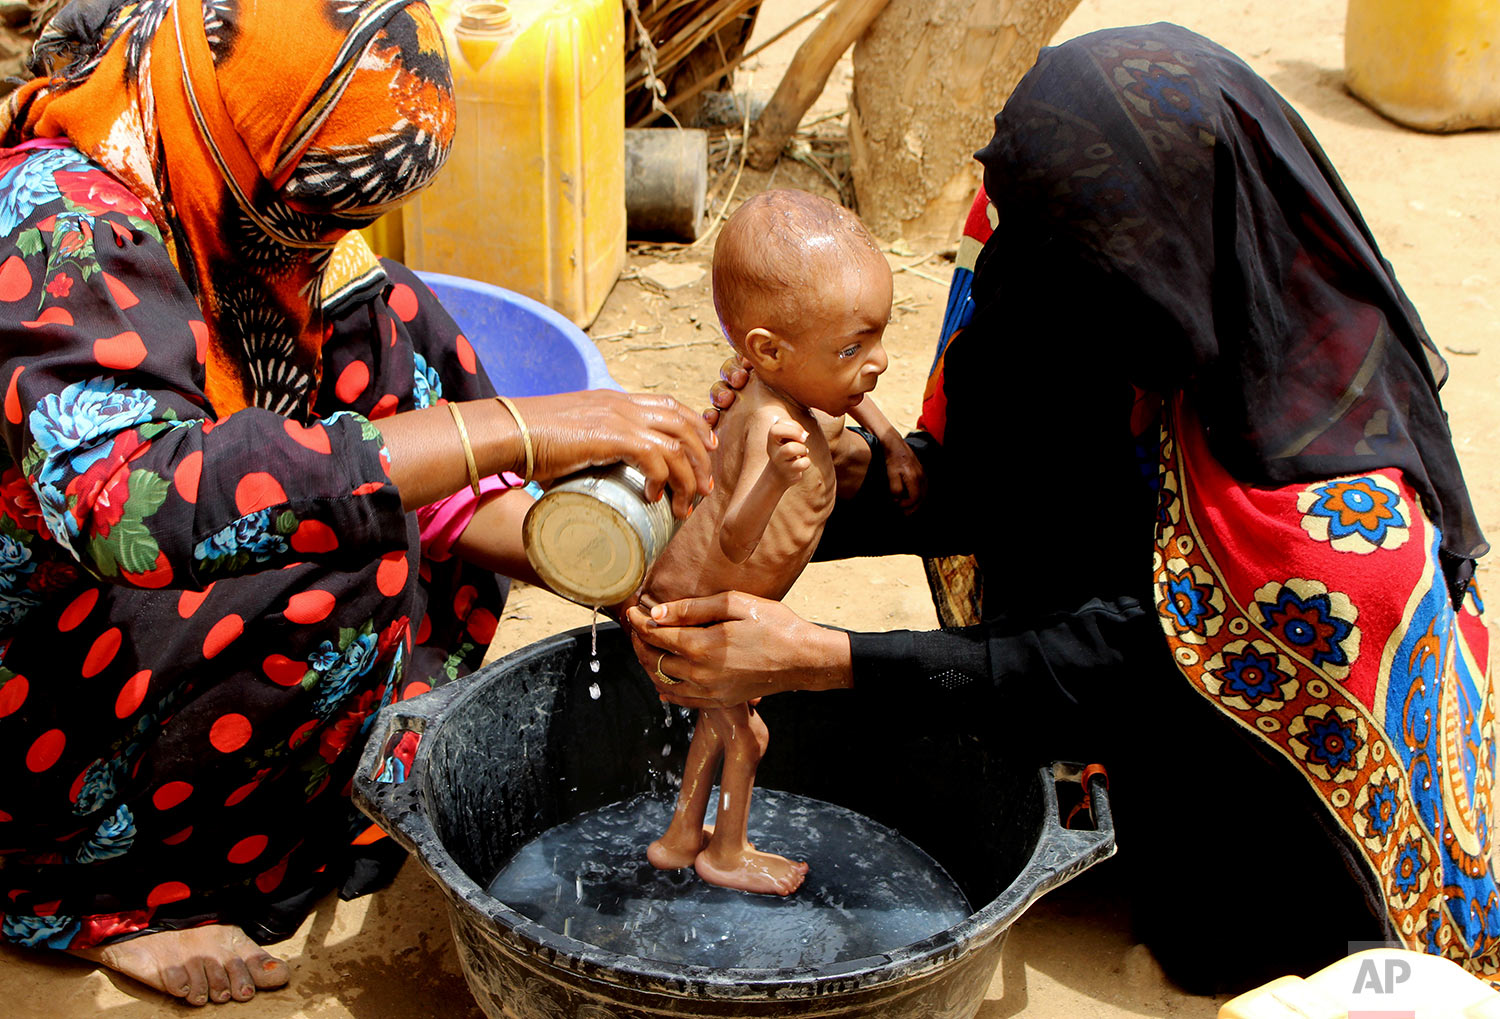 A severely malnourished infant is bathed in a bucket, Aug. 25, 2018 Aslam, Hajjah, Yemen. (AP Photo/Hammadi Issa)